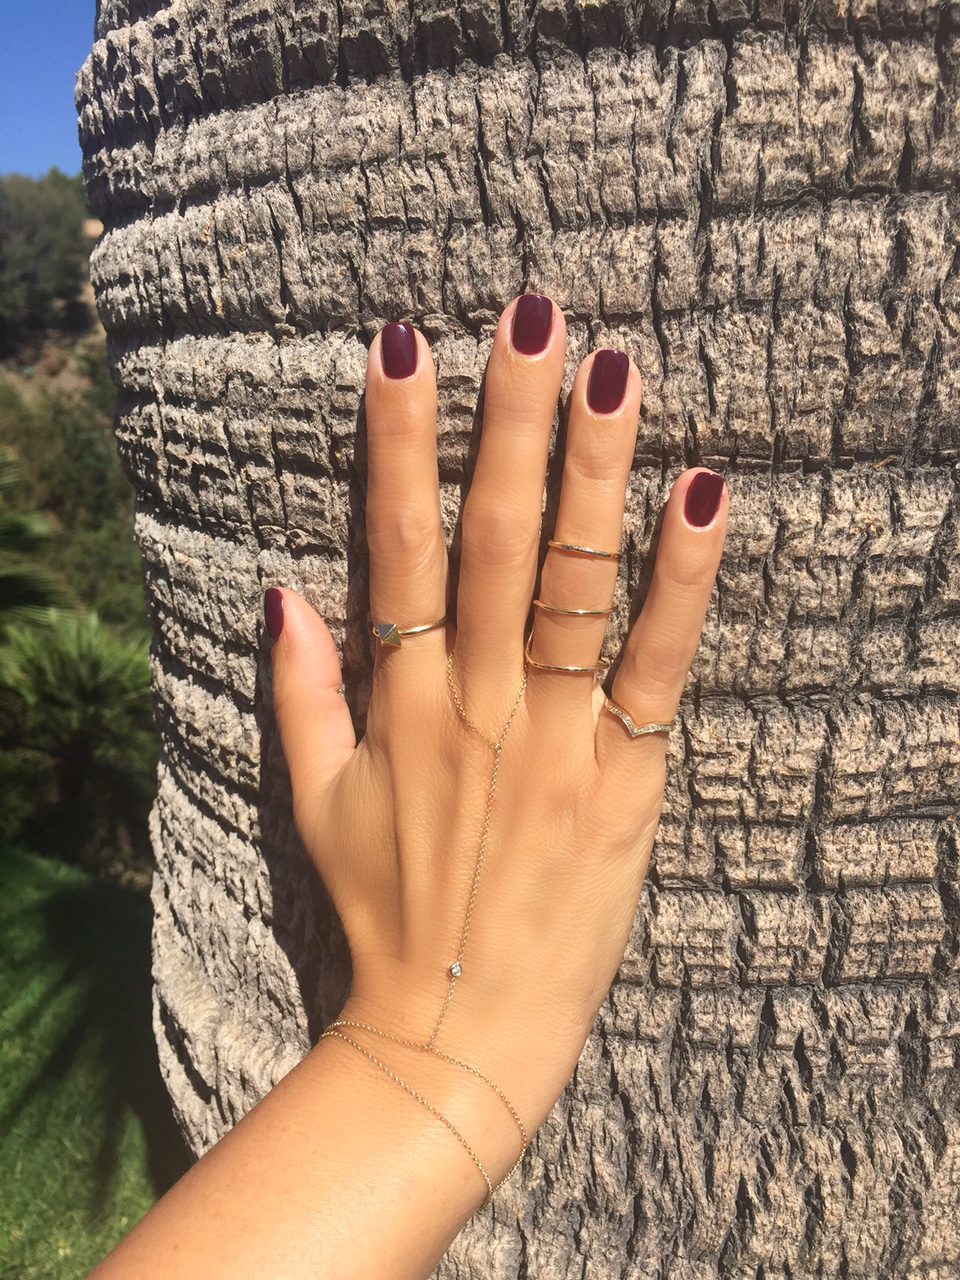 Hand chain, pyramid and pinky chevron ring available at XIV Karats in Beverly Hills. Gold midi and stacked ring are from the Brentwood Farmer's Market in Los Angeles. See below to purchase similar items online!